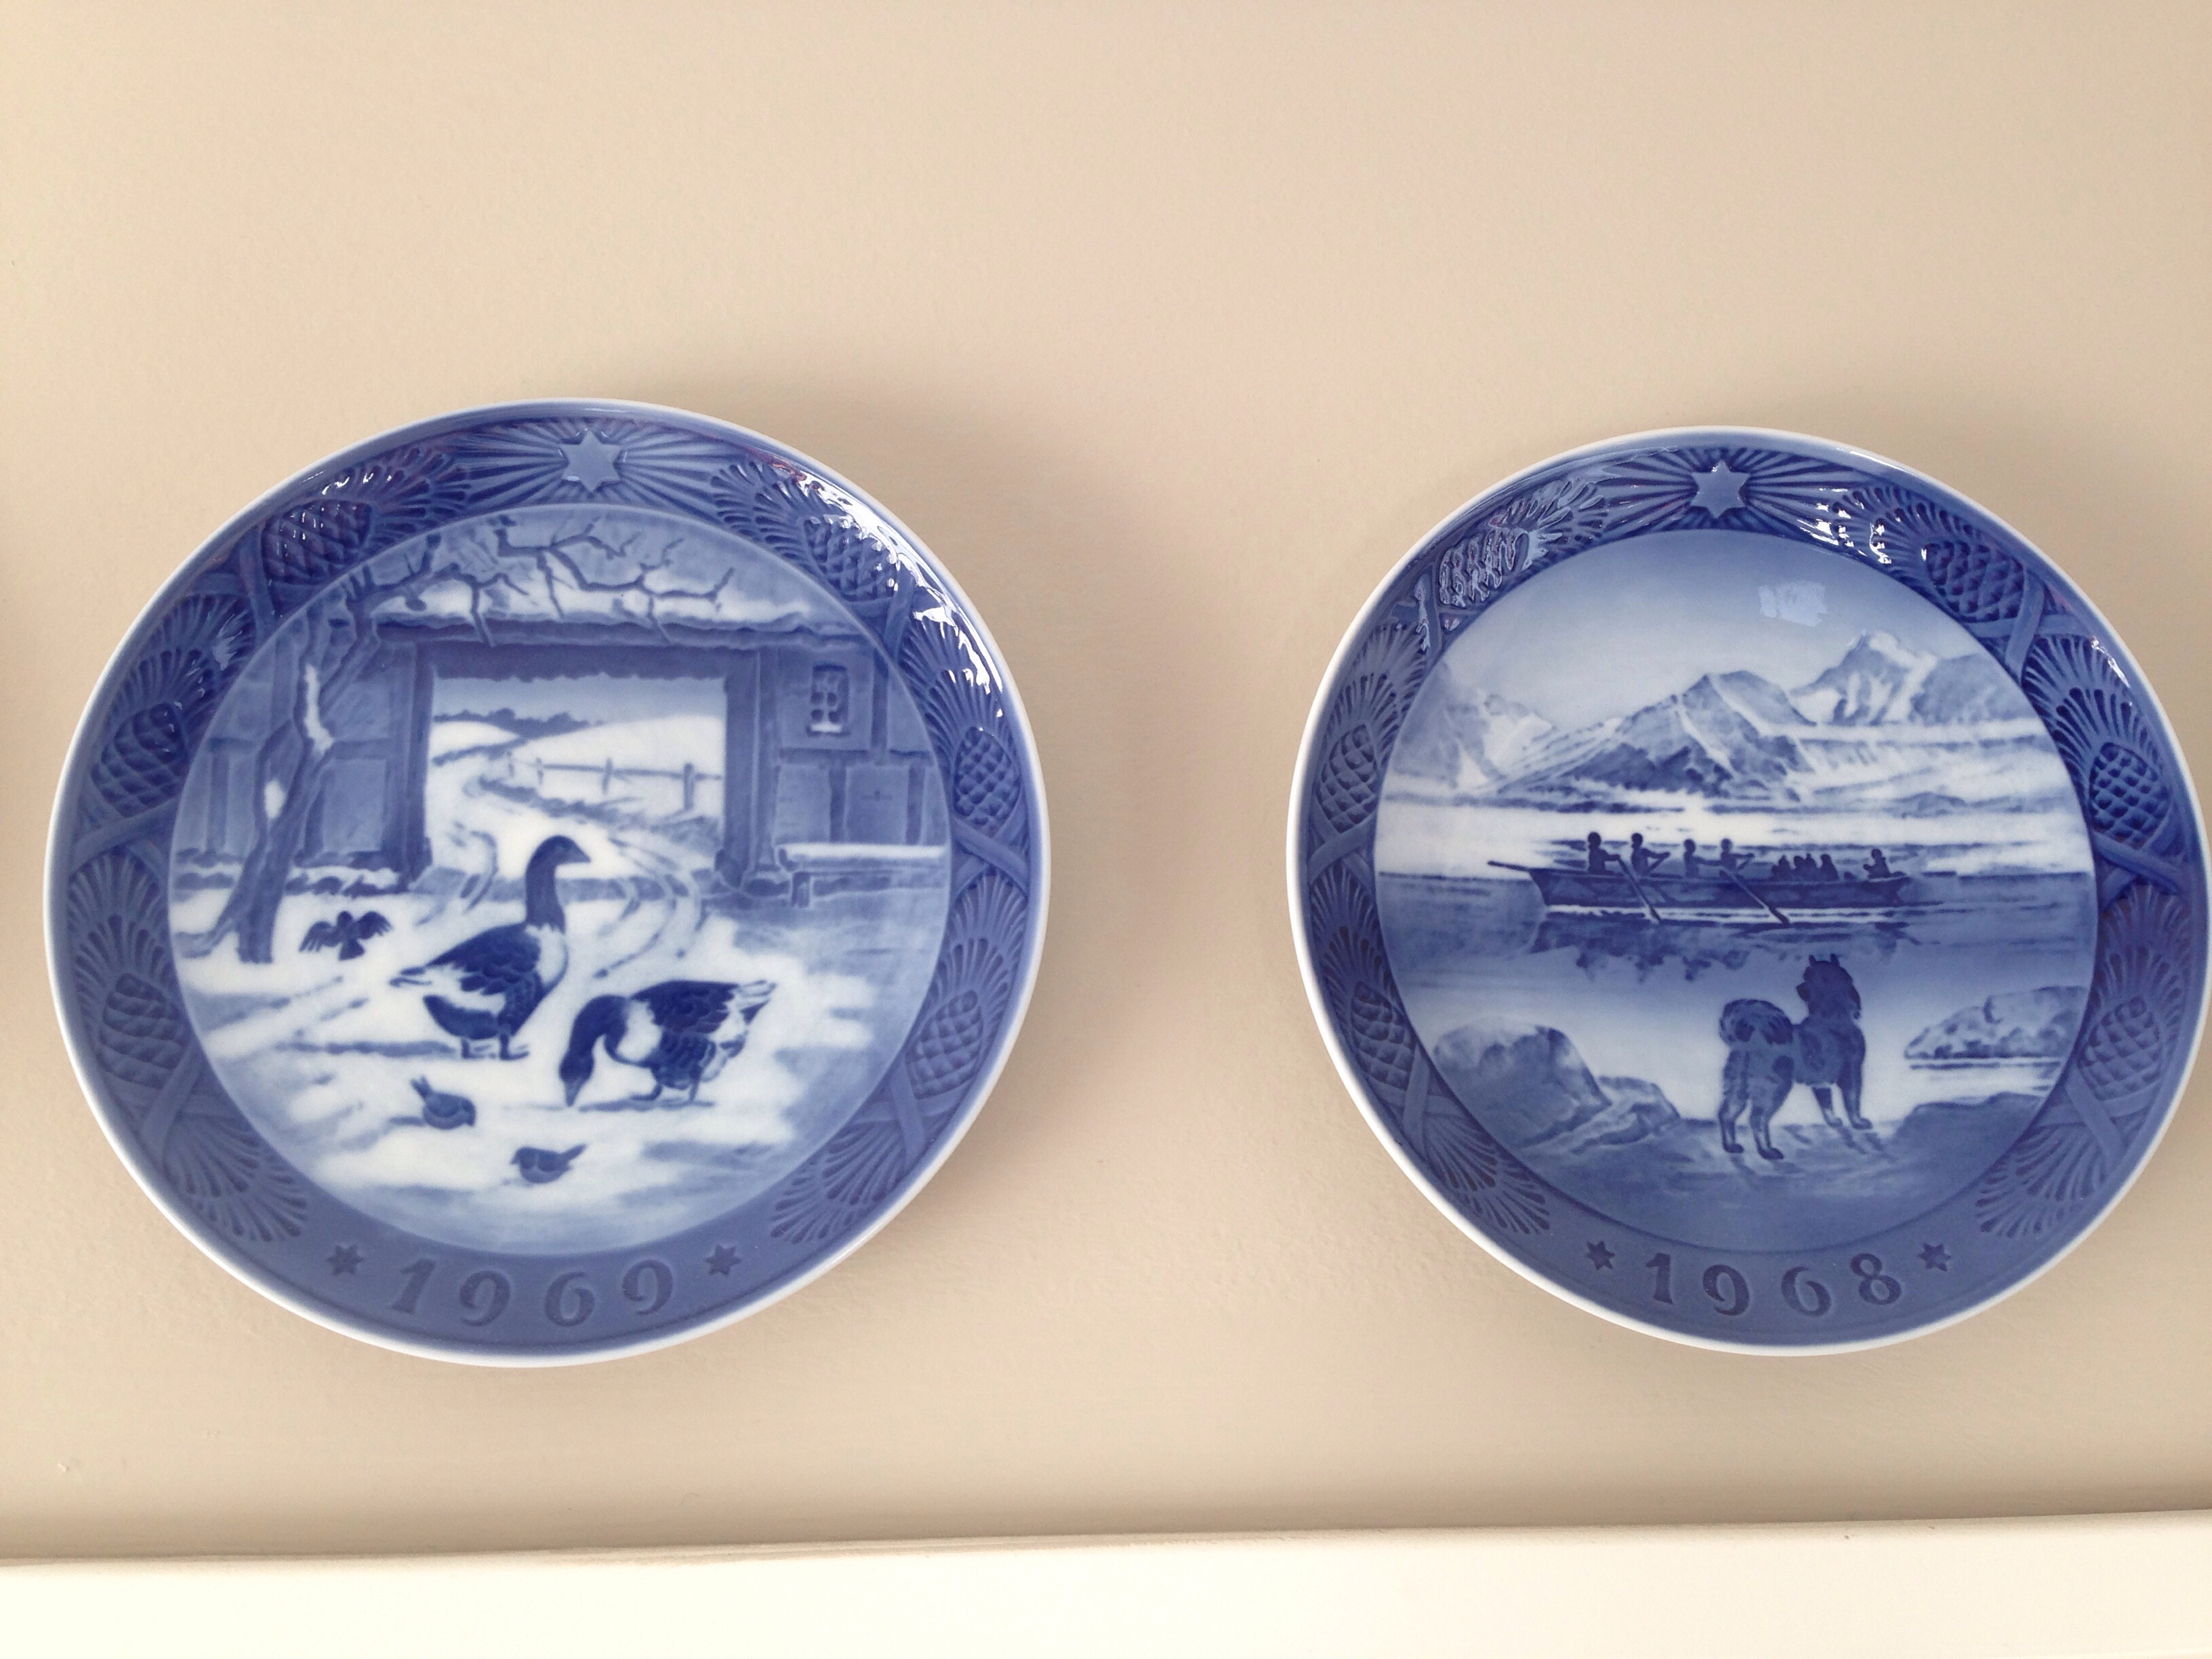 christmas plates like these in the houses of our grandparents they are a little old fashioned but we enjoy the way they look and the nostalgia they - Royal Copenhagen Christmas Plates